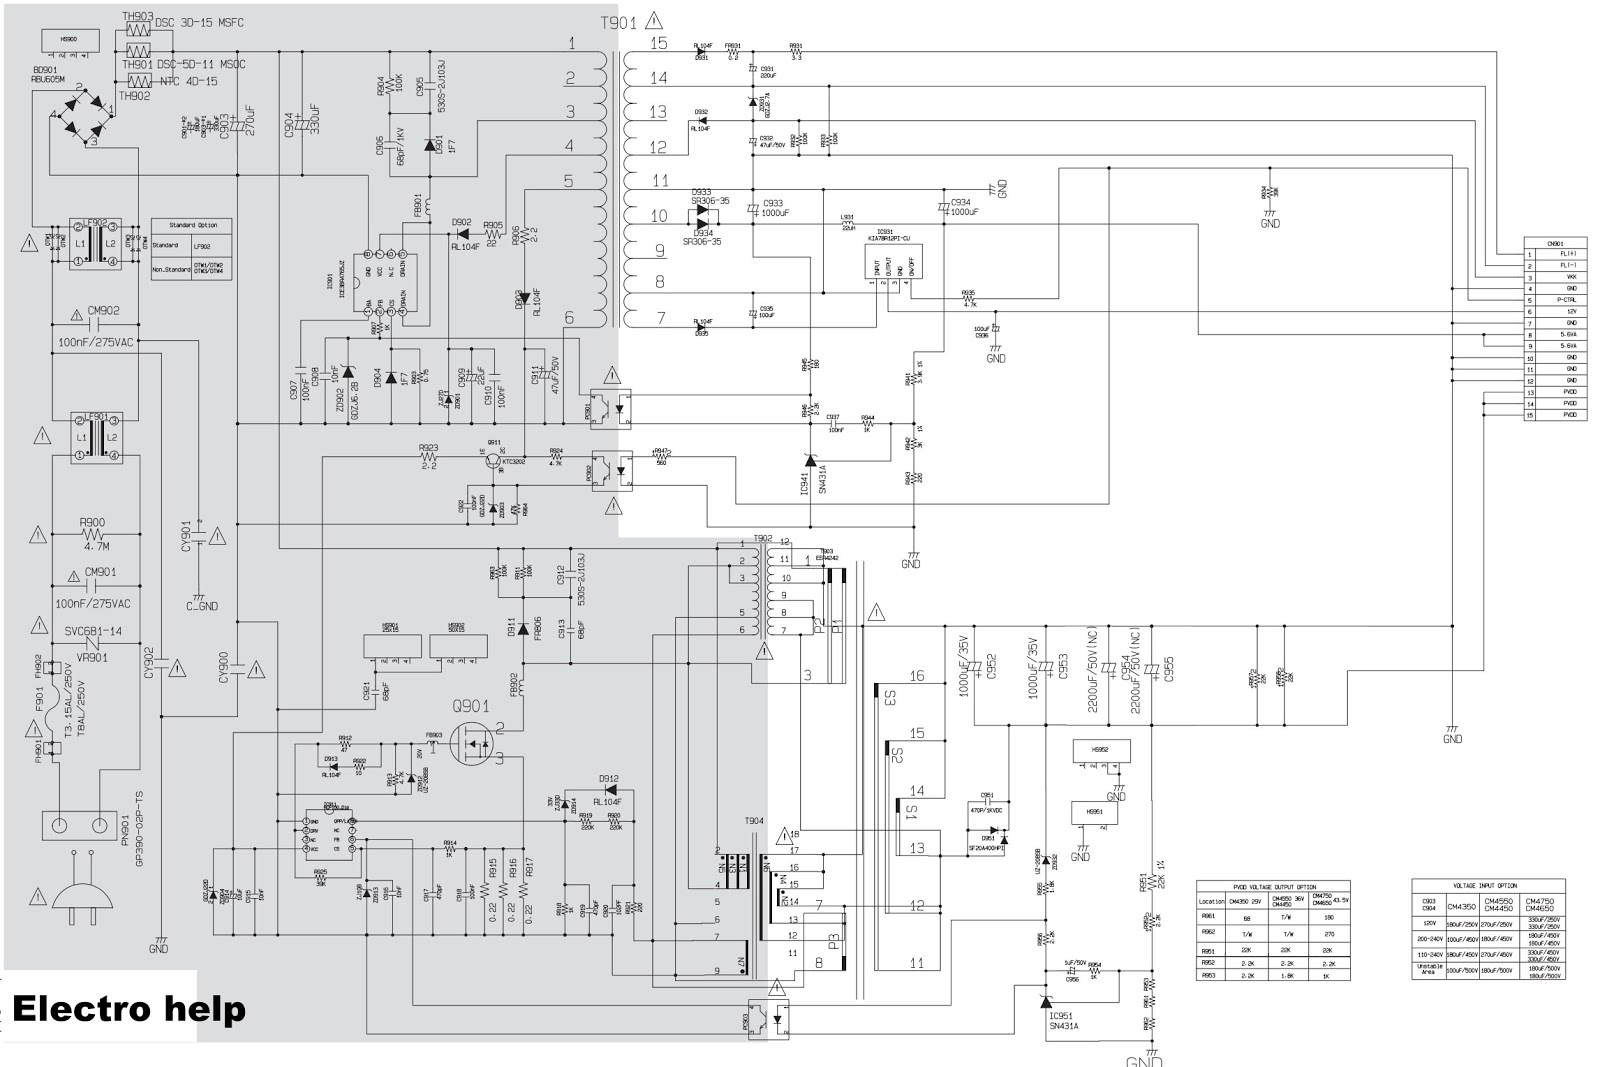 smps%2Bschematic%2BLG%2BCM4350 lg cm4350 mini hi fi system how to upgrade the software, power  at n-0.co